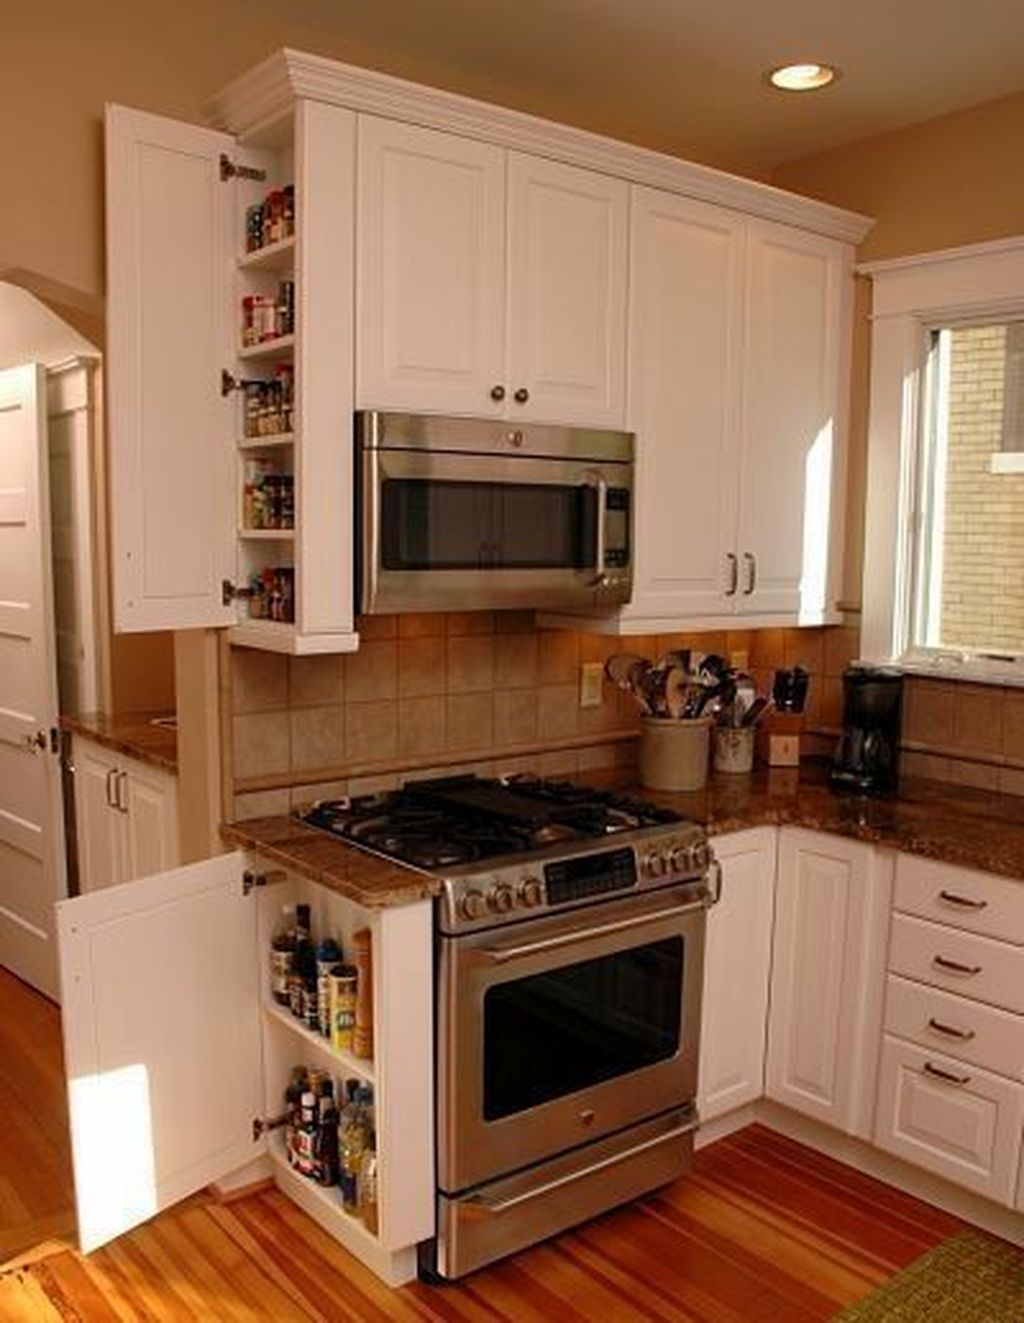 Adorable Kitchen Cabinet Ideas That Looks Neat To Try 39